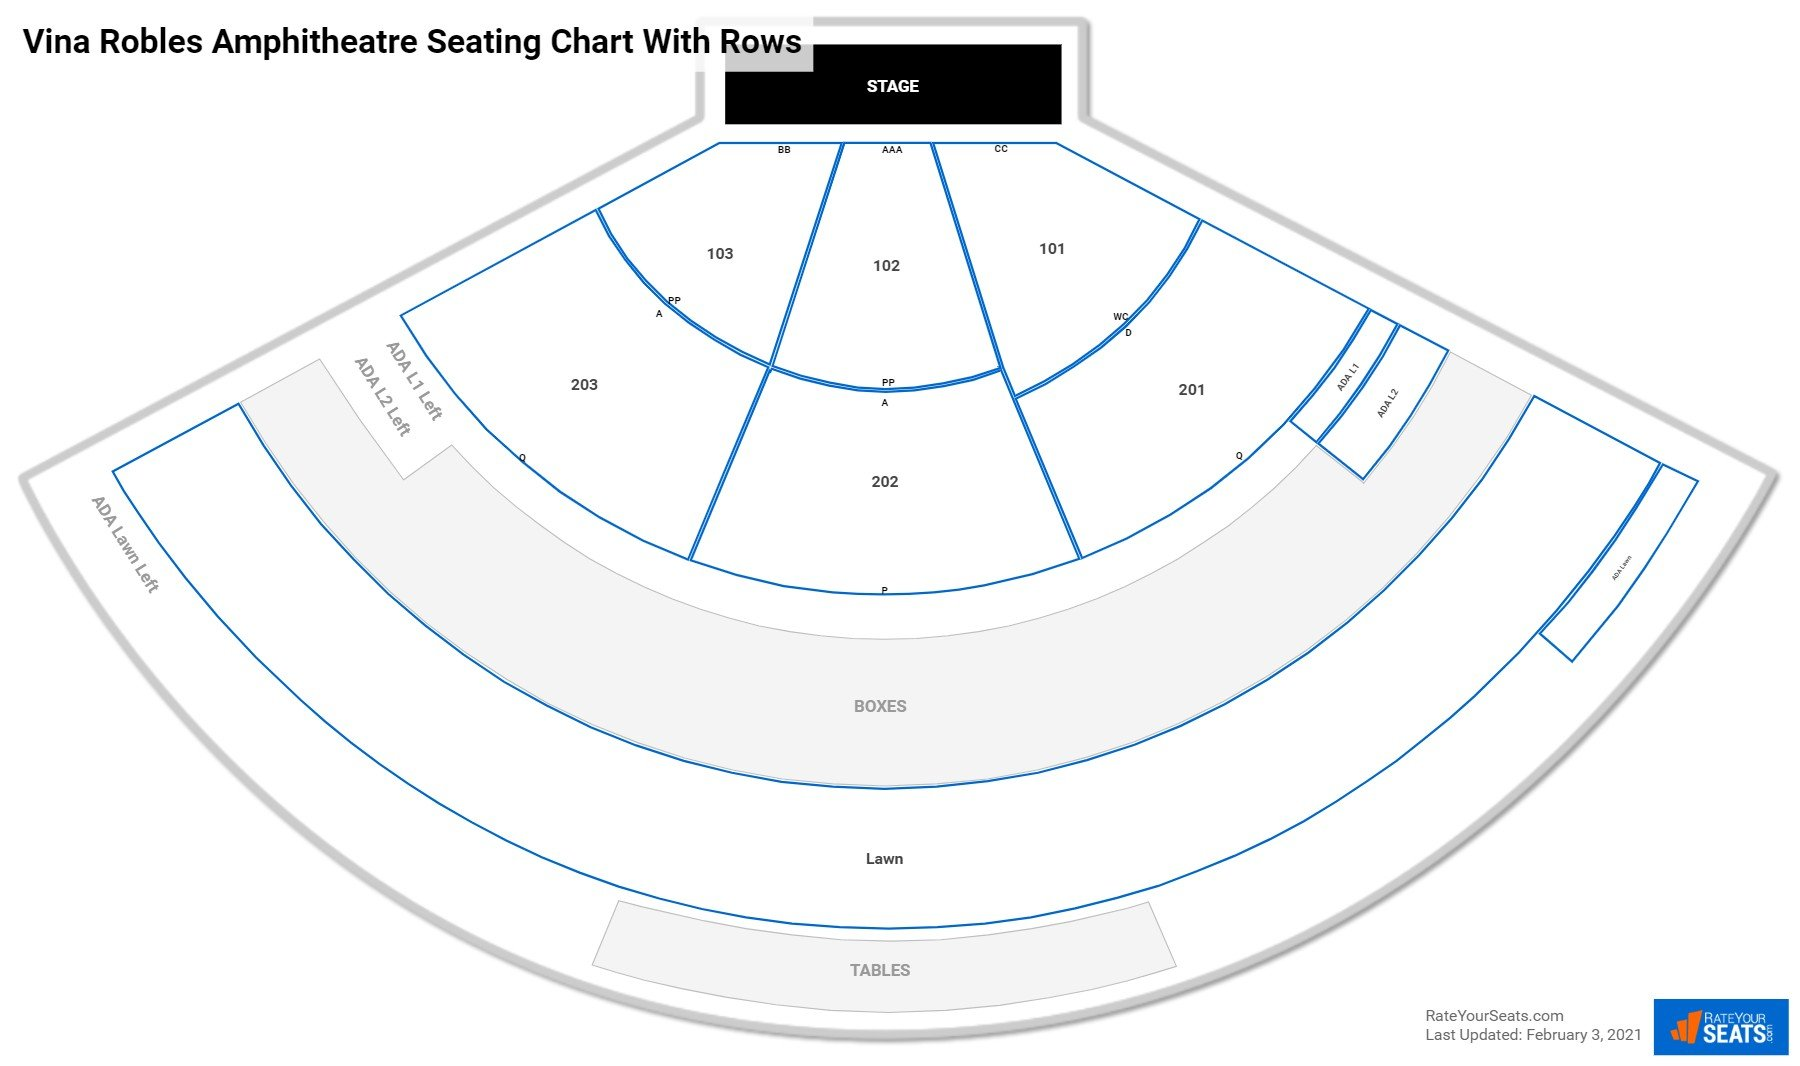 Vina Robles Amphitheatre seating chart with rows